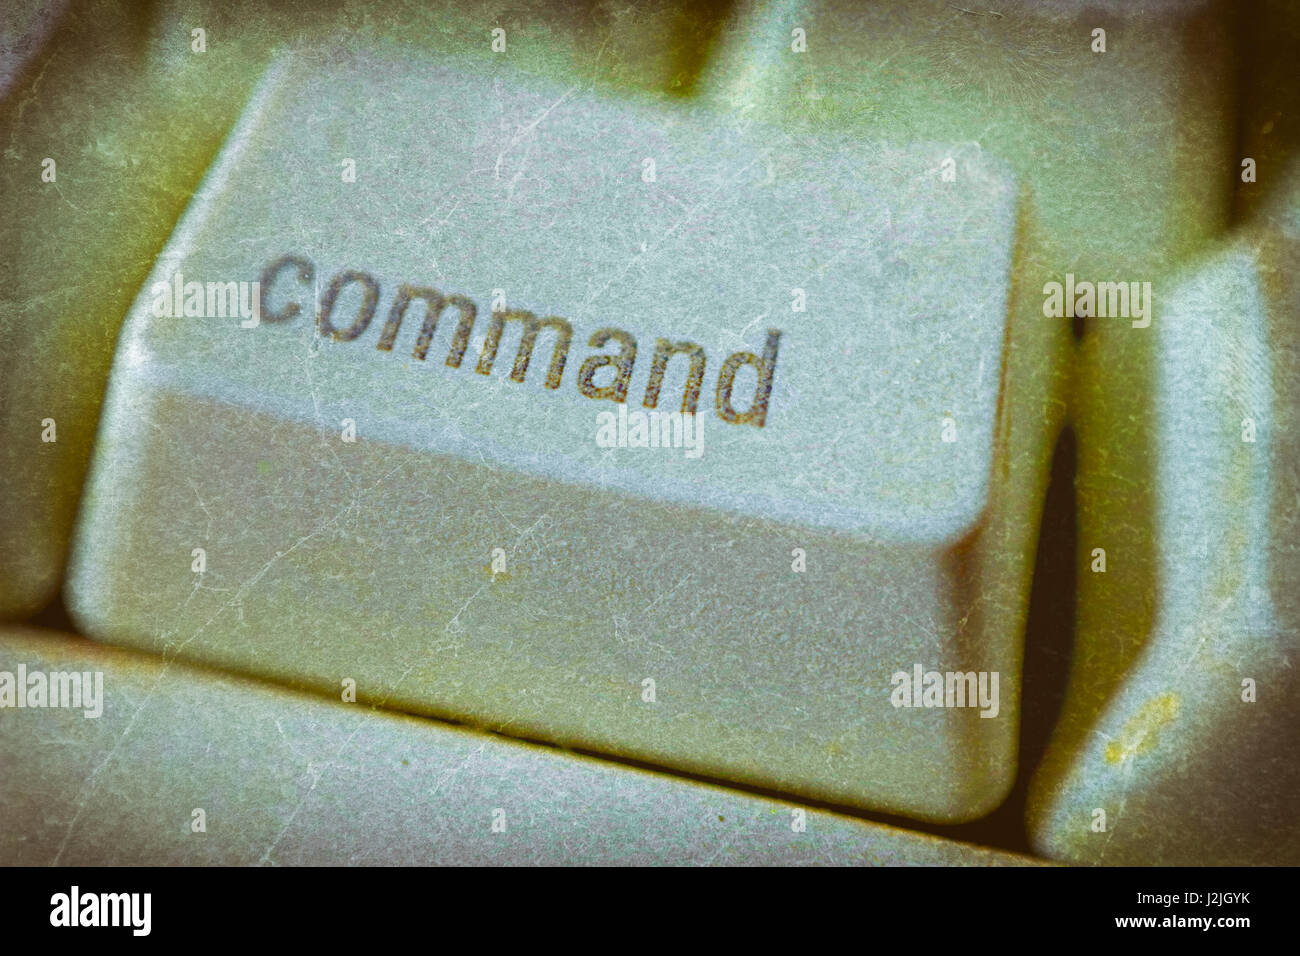 Command key on a computer keyboard. - Stock Image